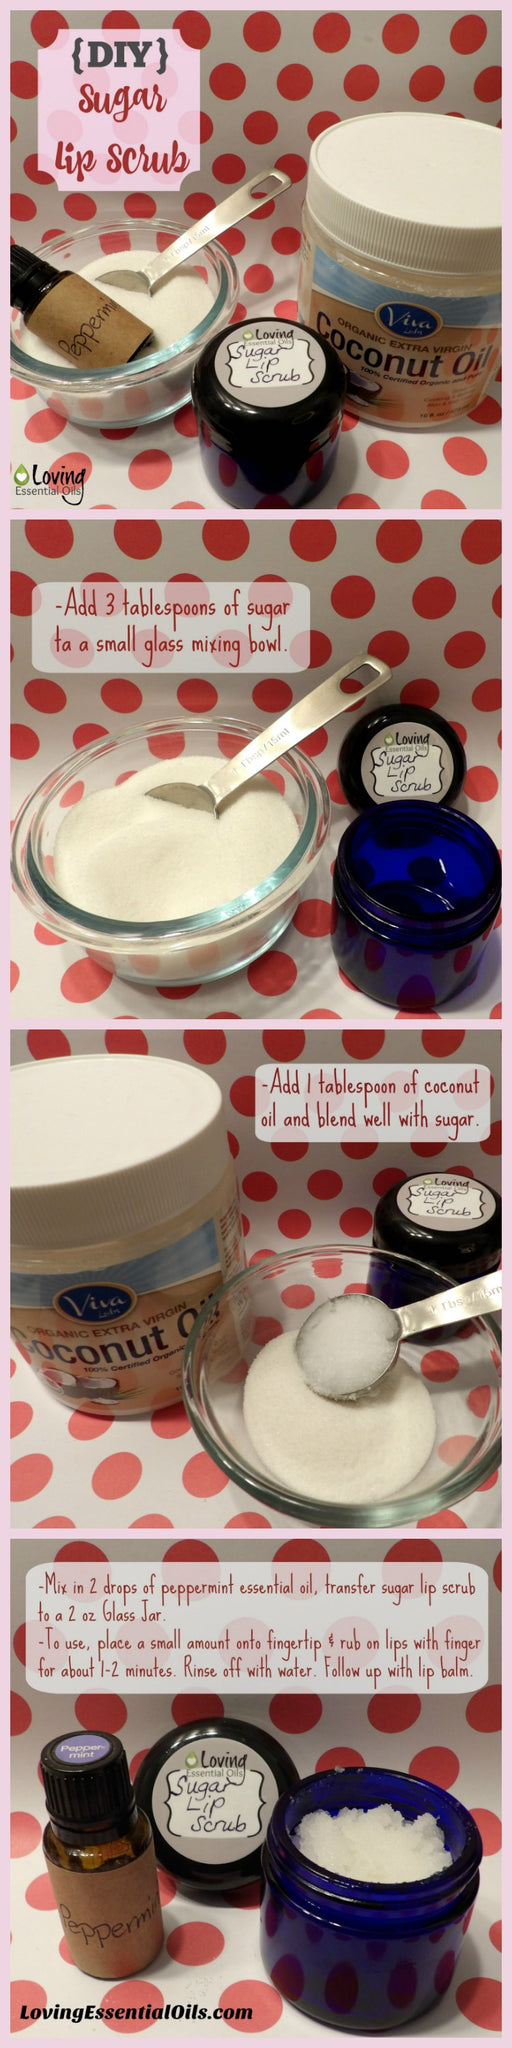 DIY Sugar Lip Scrub Tutorial